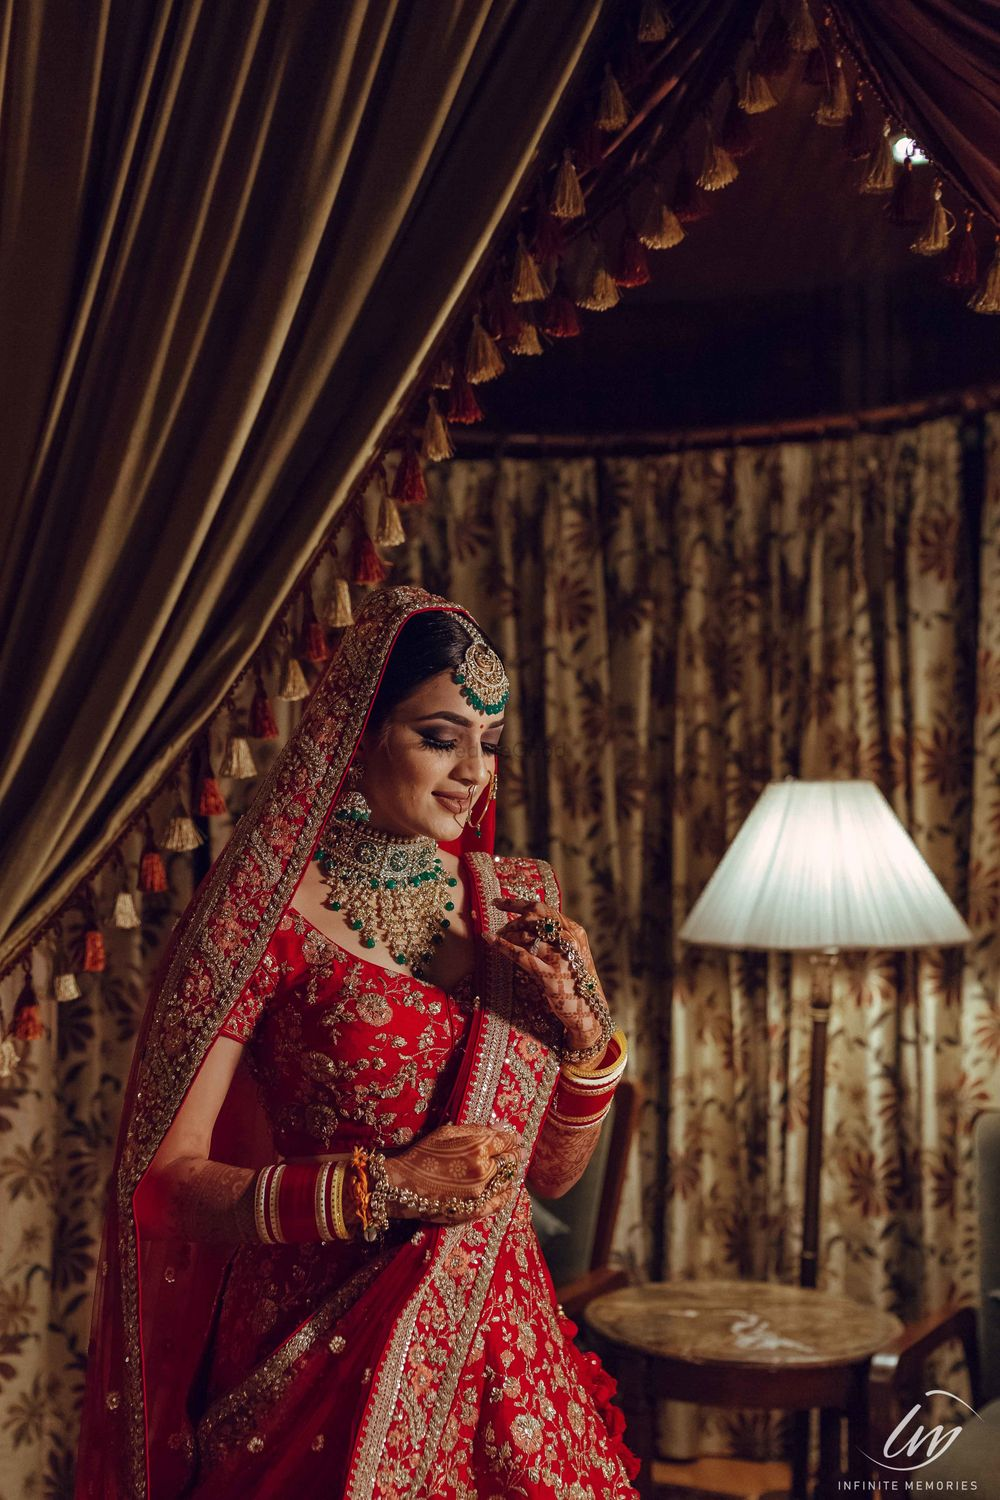 Photo of Bridal portrait in room in red lehenga and green jewellery